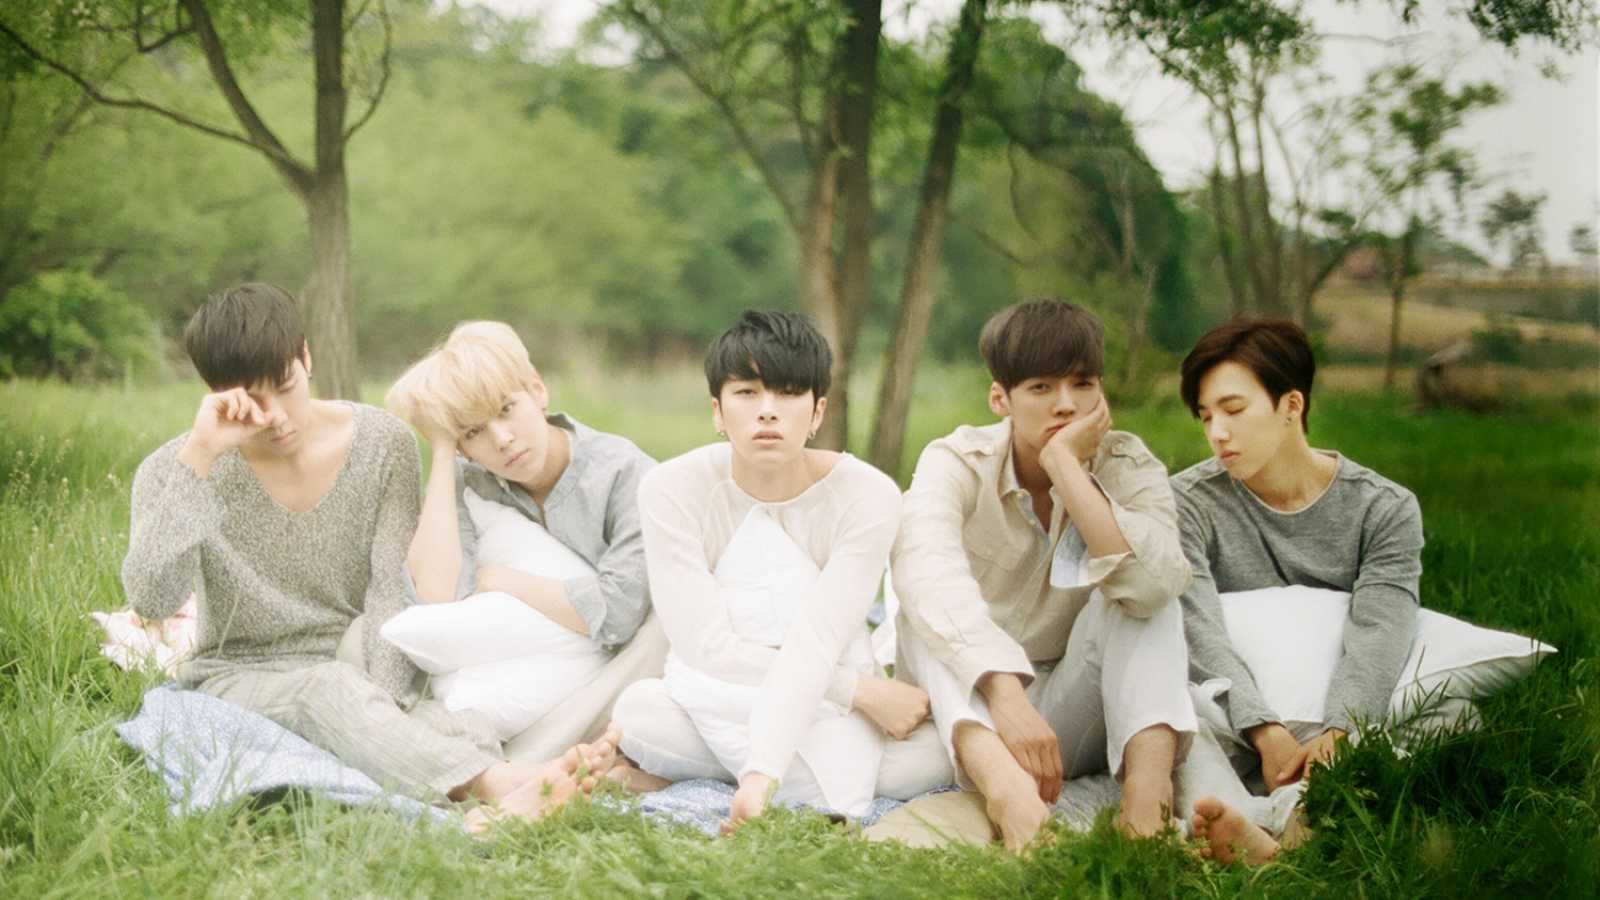 Boys Republic © Universal Music Korea. All rights reserved